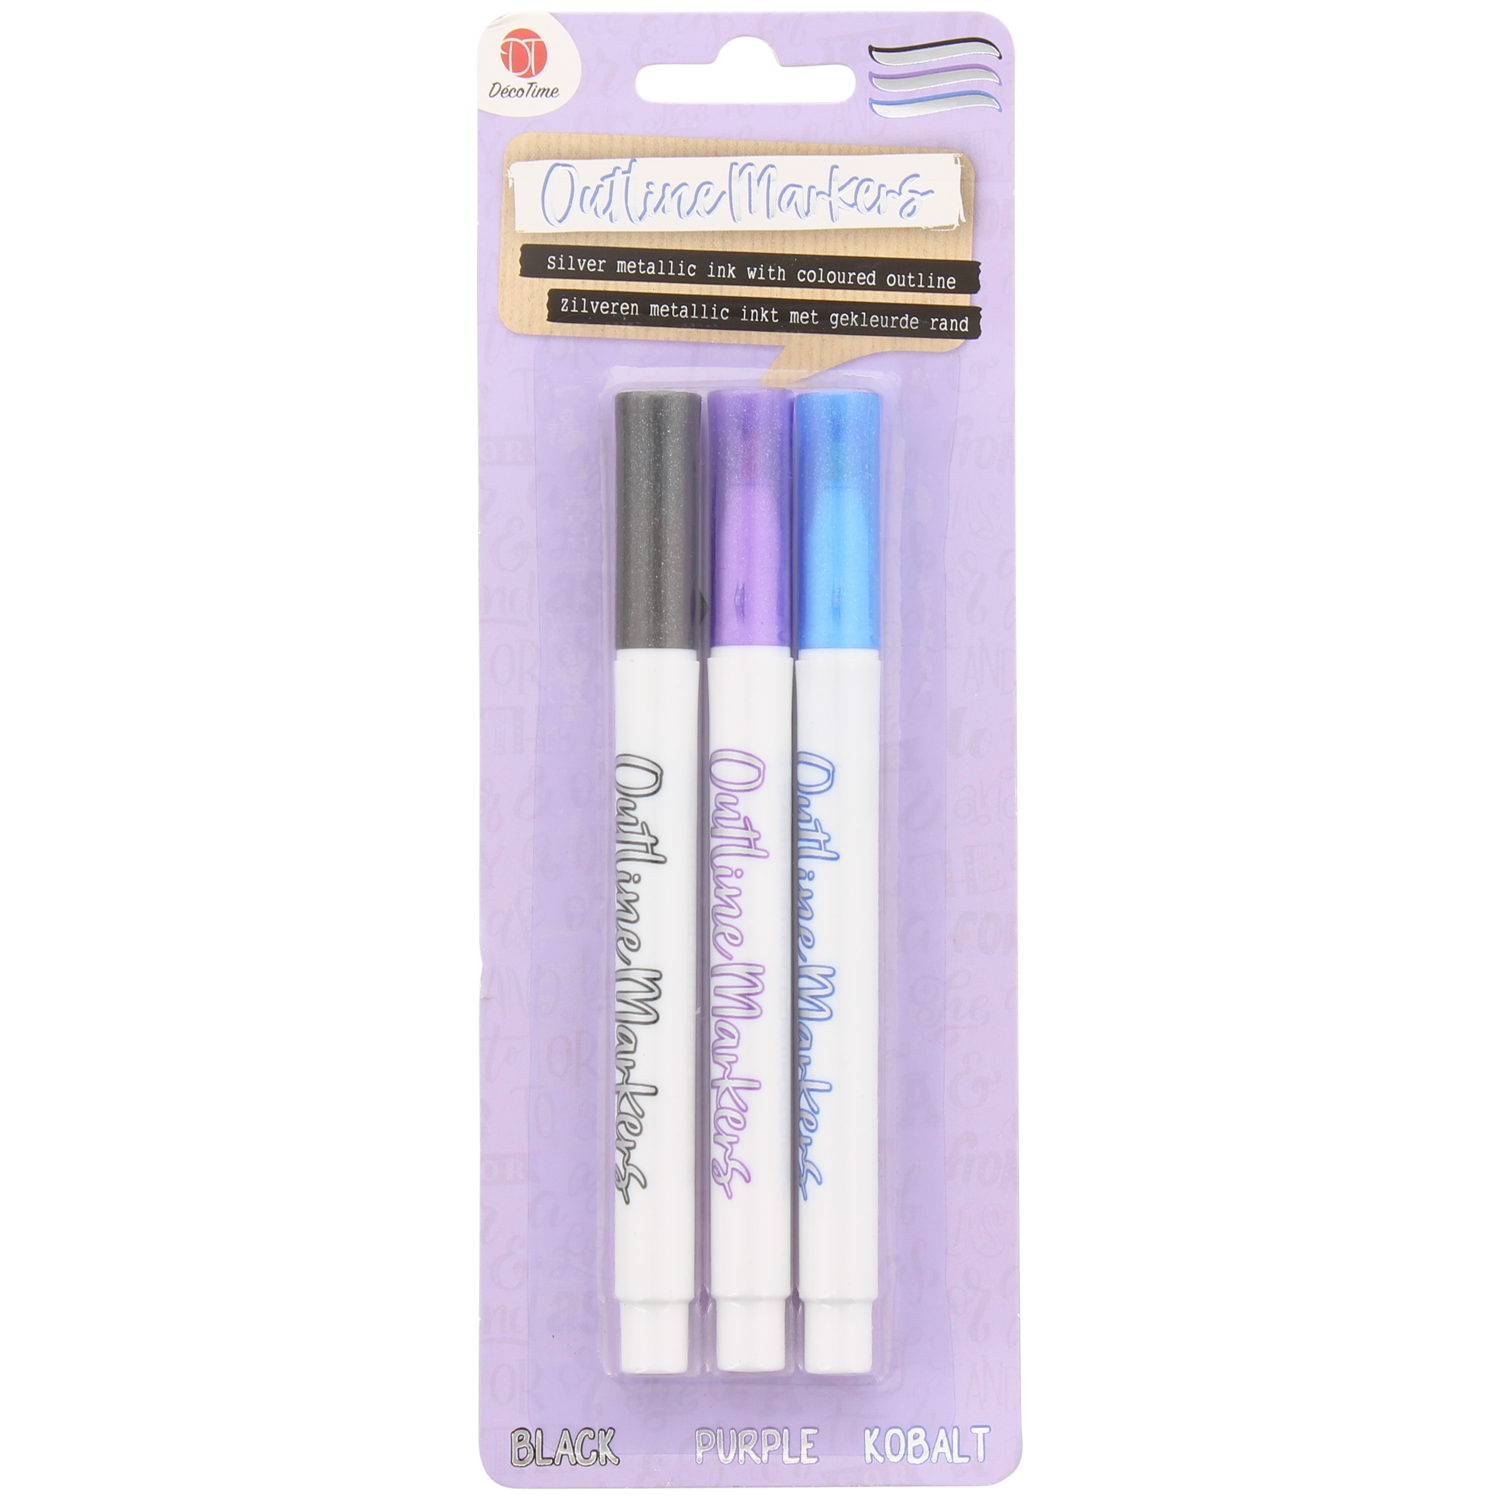 Decotime outline markers